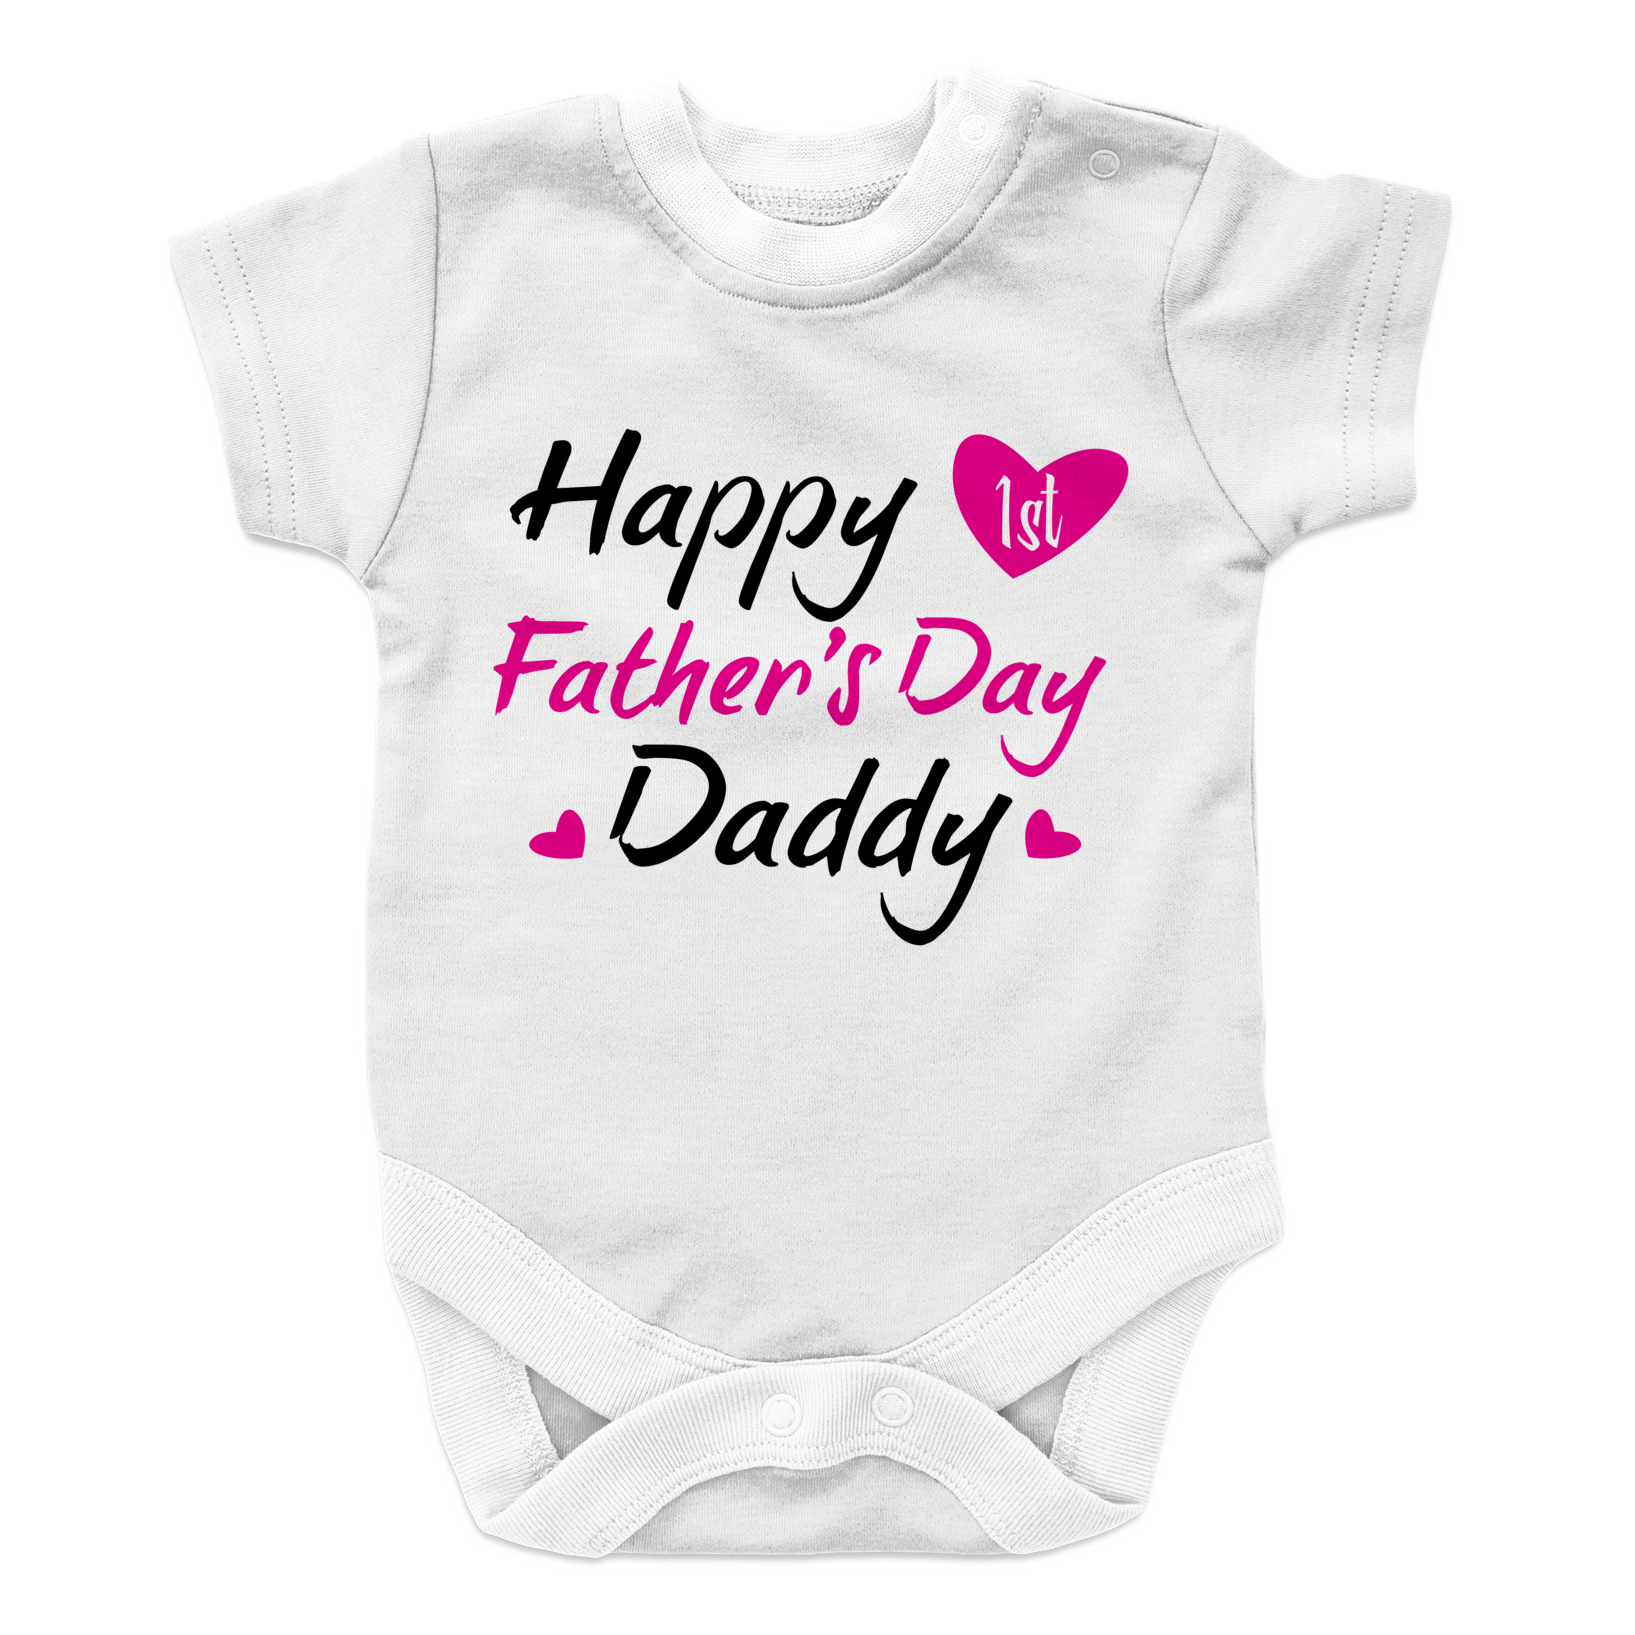 Happy 1st Father's Day Daddy - Girl